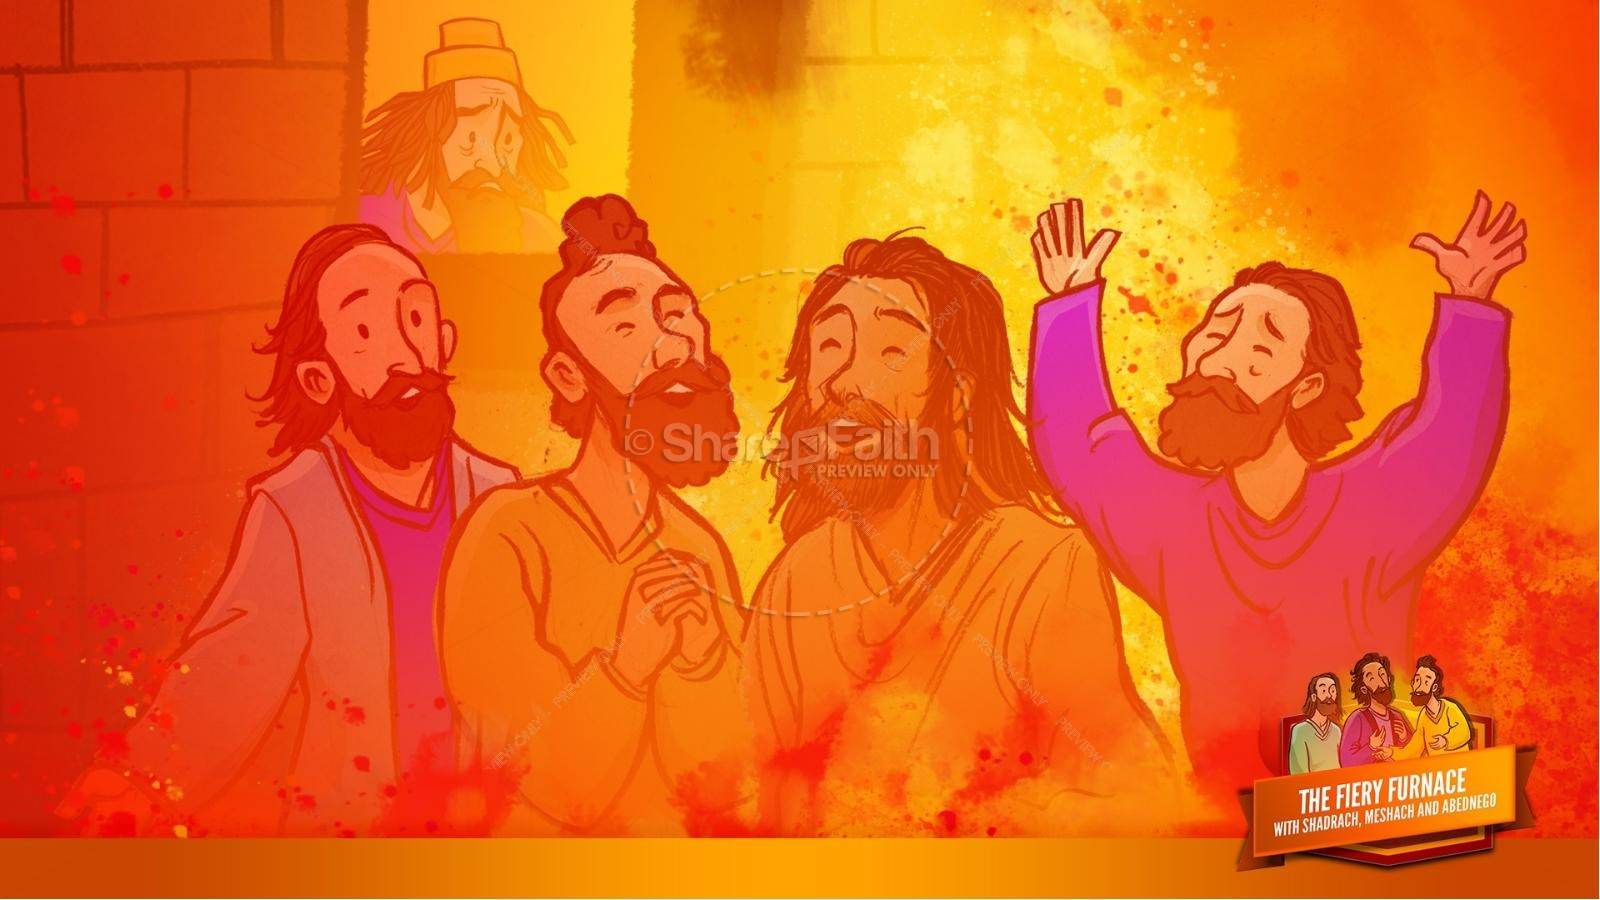 The Fiery Furnace with Shadrach, Meshach and Abednego Kids Bible Story | slide 55